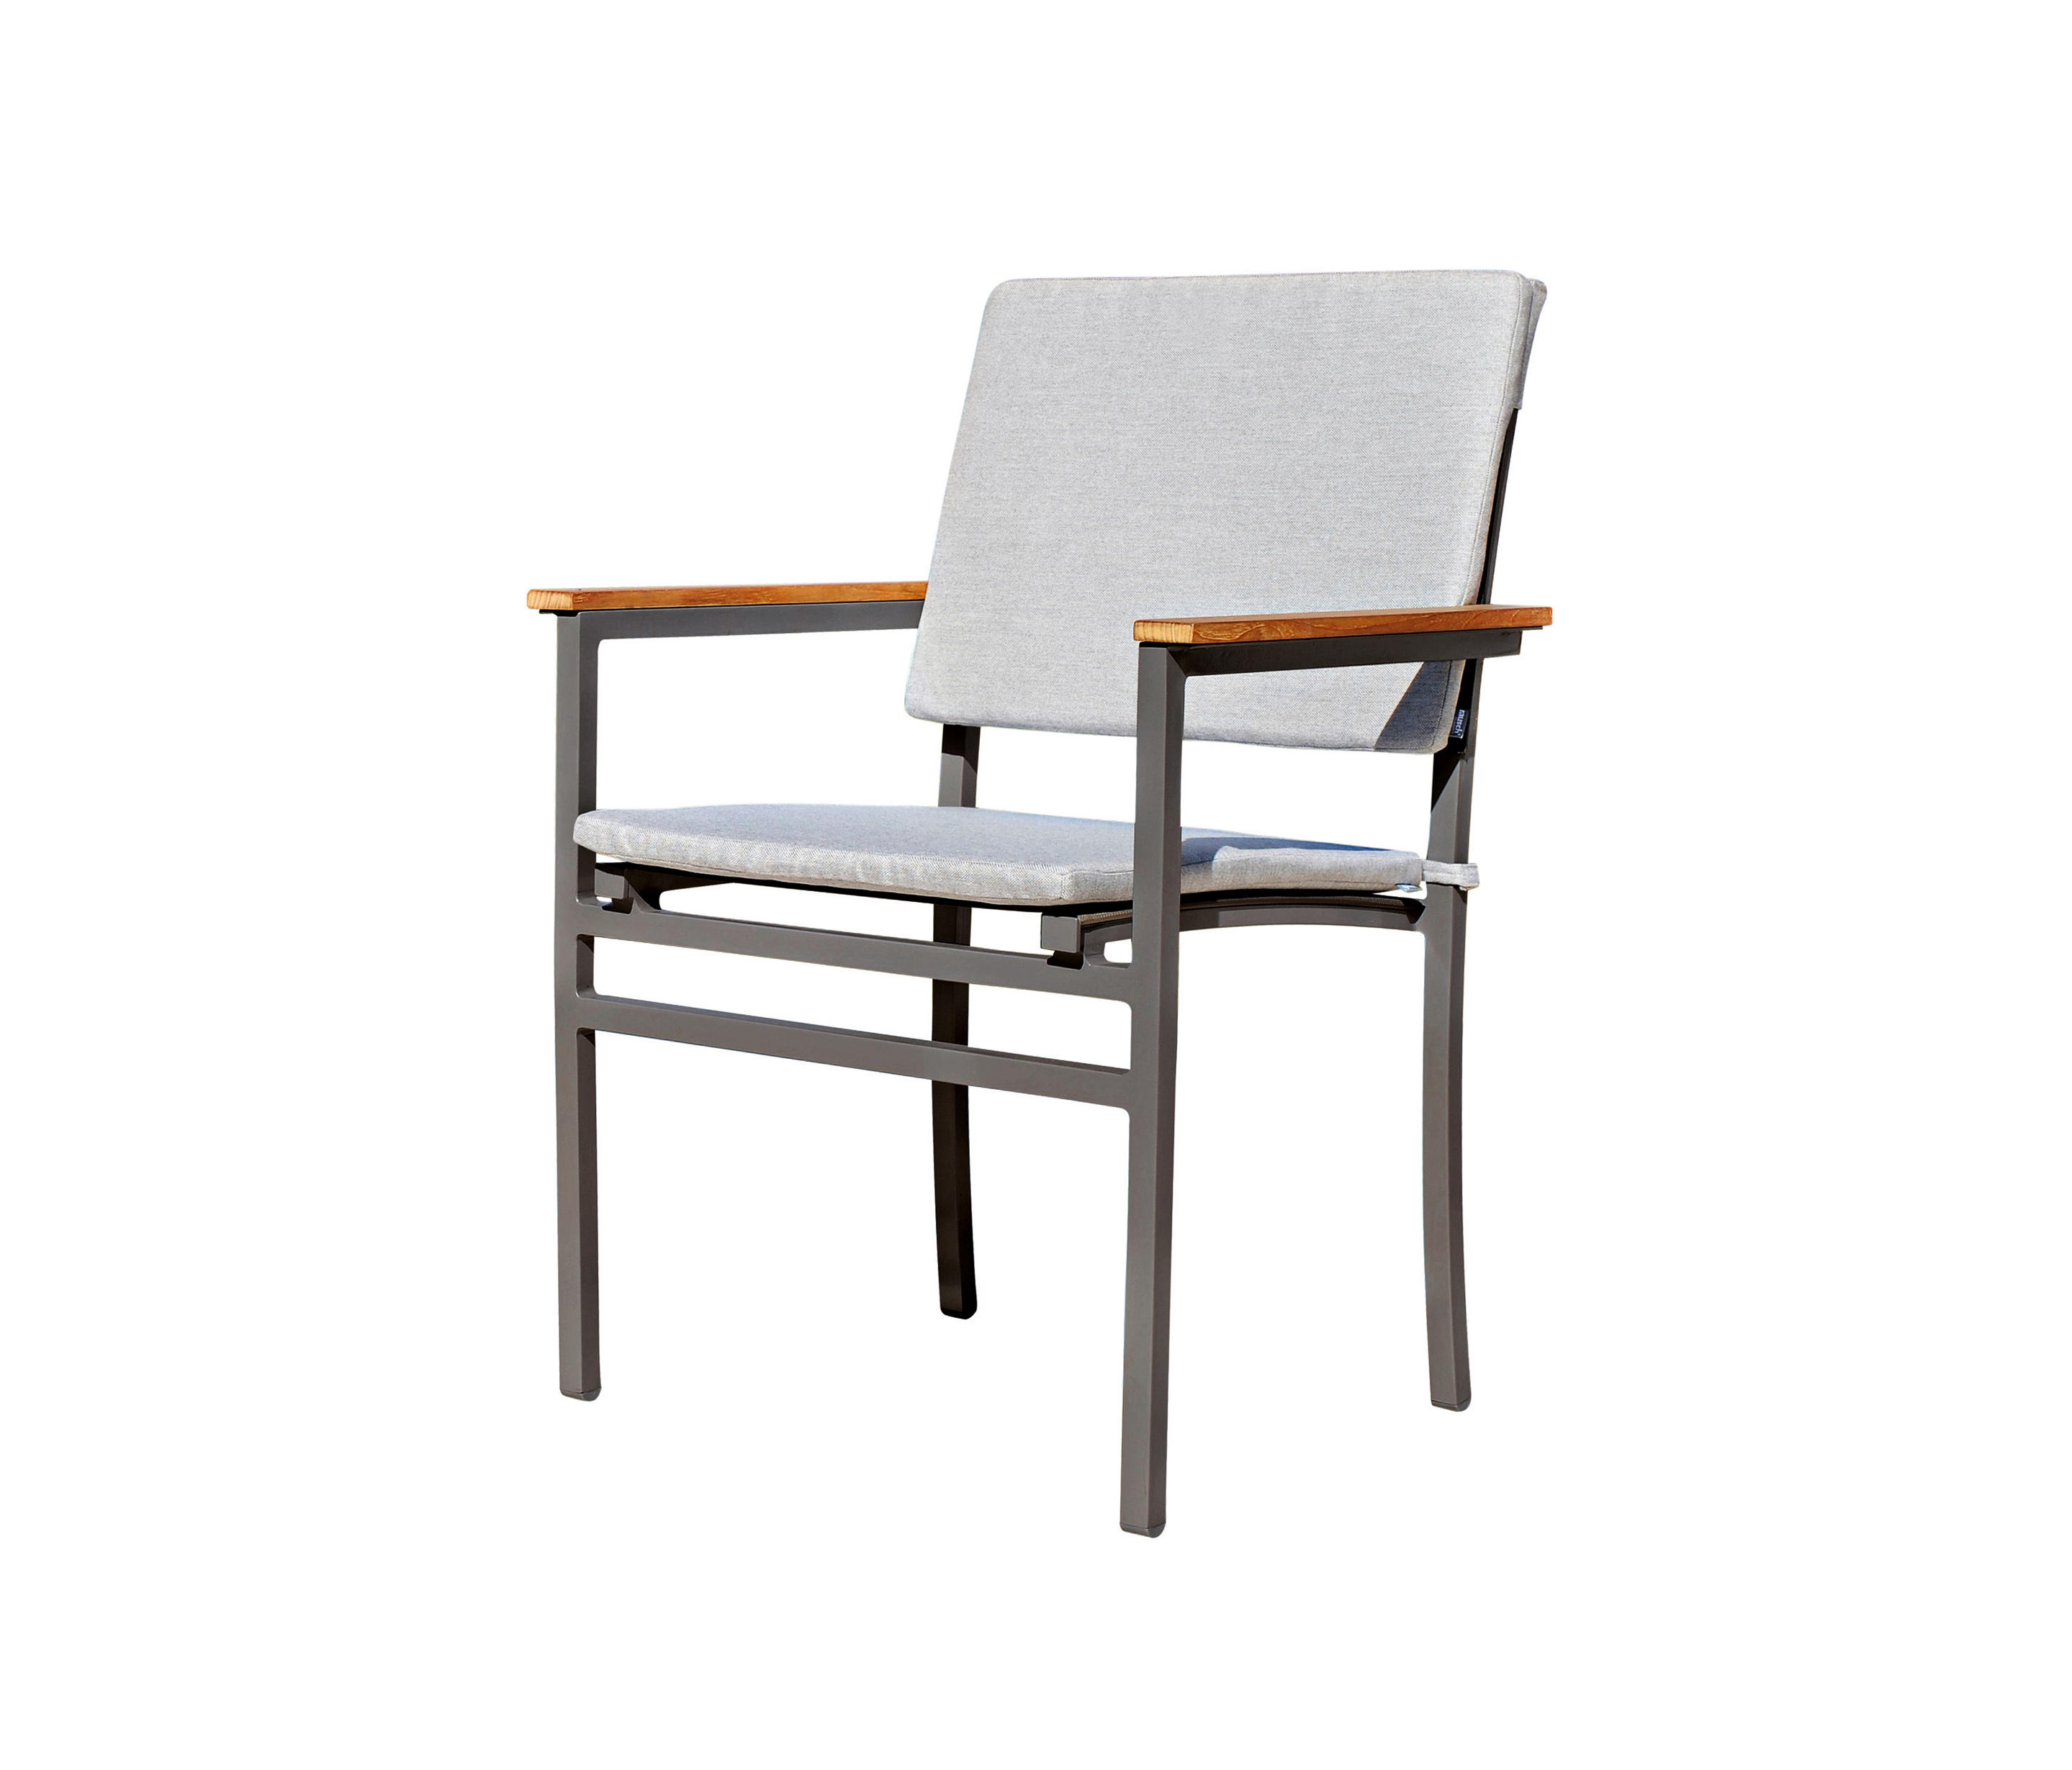 Rausch Classics Long Beach Stacking Chair With Seat And Back Cushions